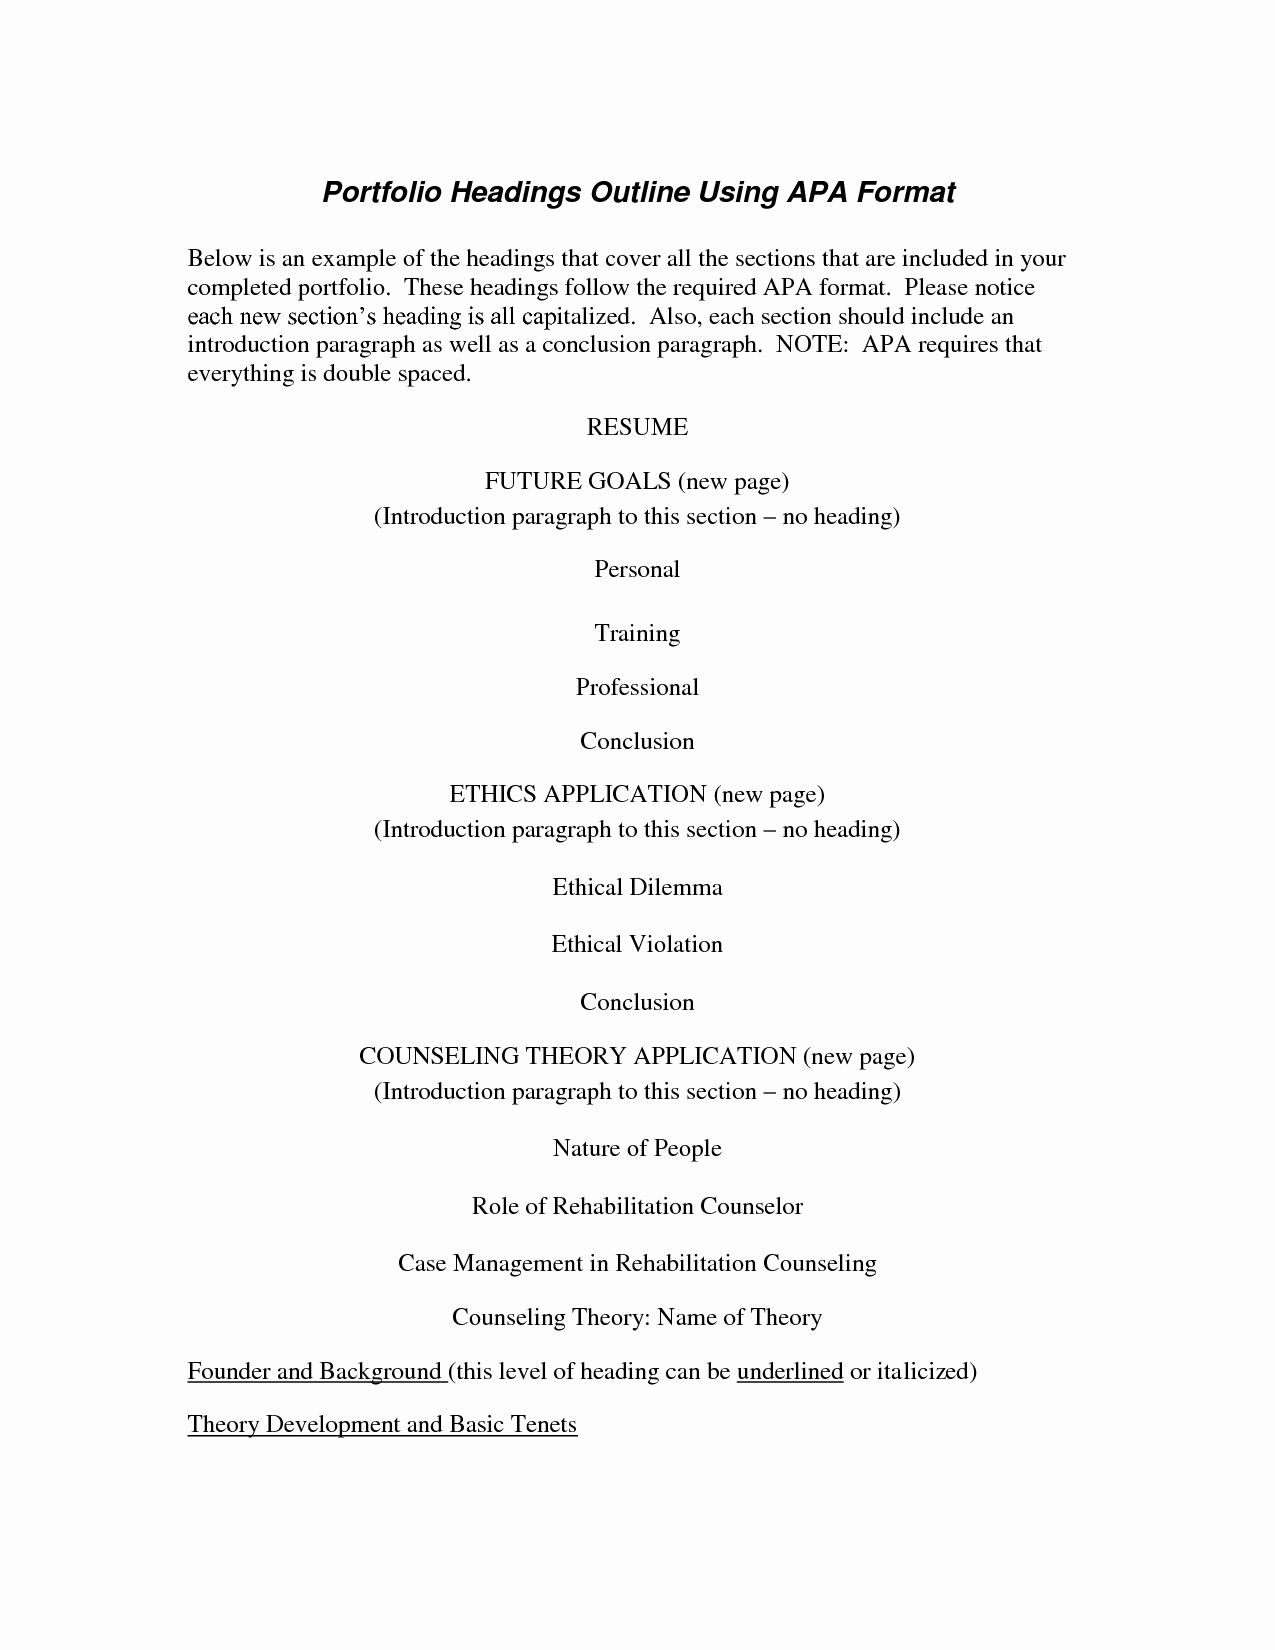 Apa format Example Paper Template Awesome Best S Of Proper Apa Outline format Research Paper